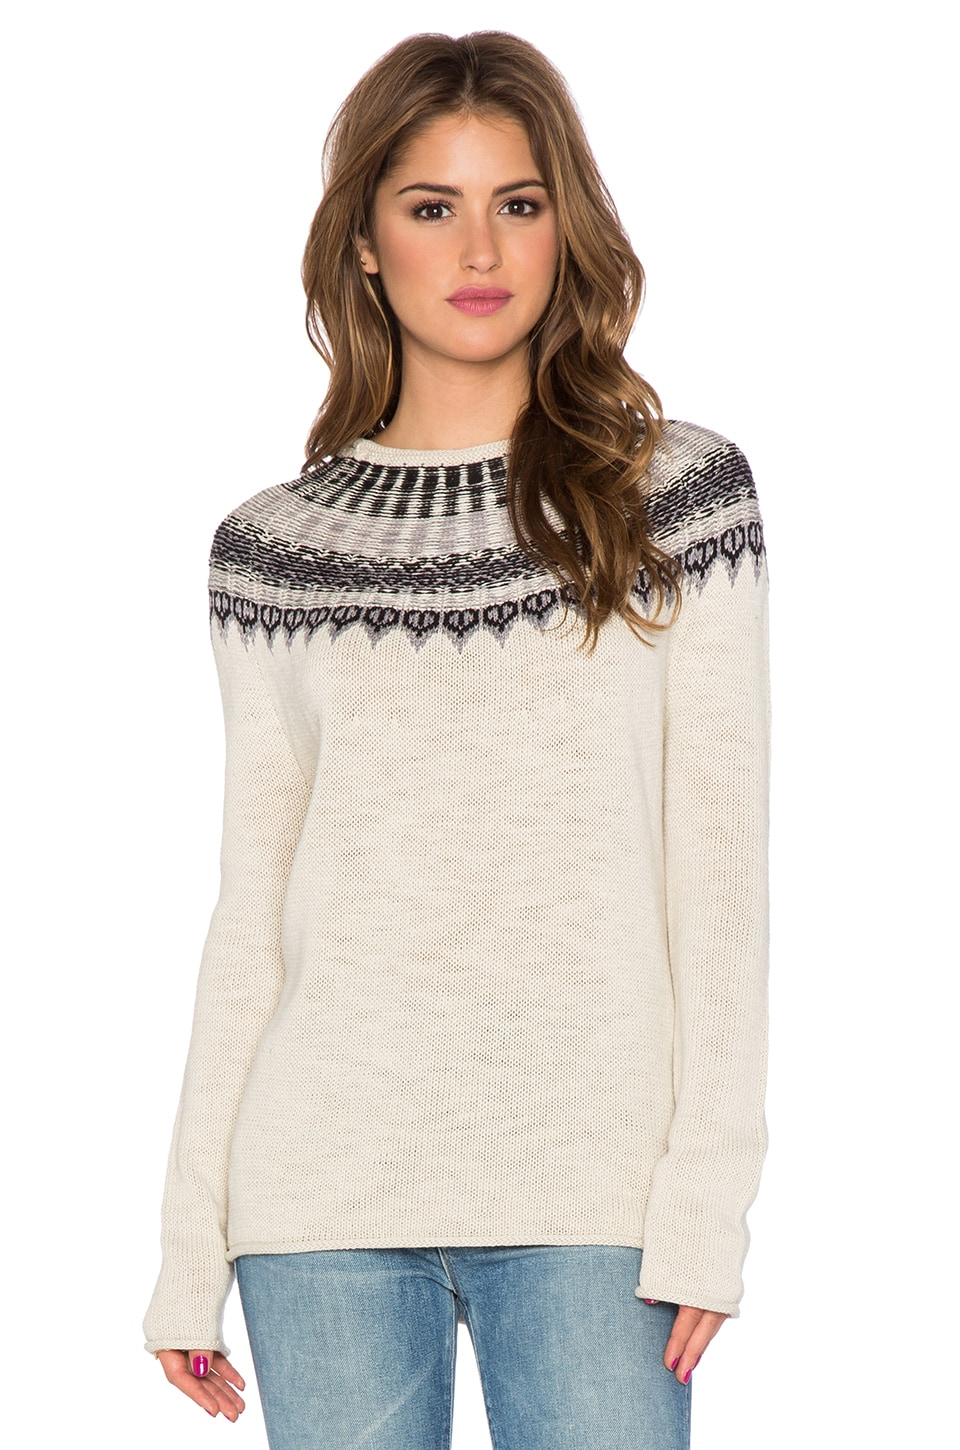 Michael Stars High Low Crew Neck Sweater in Fatigue